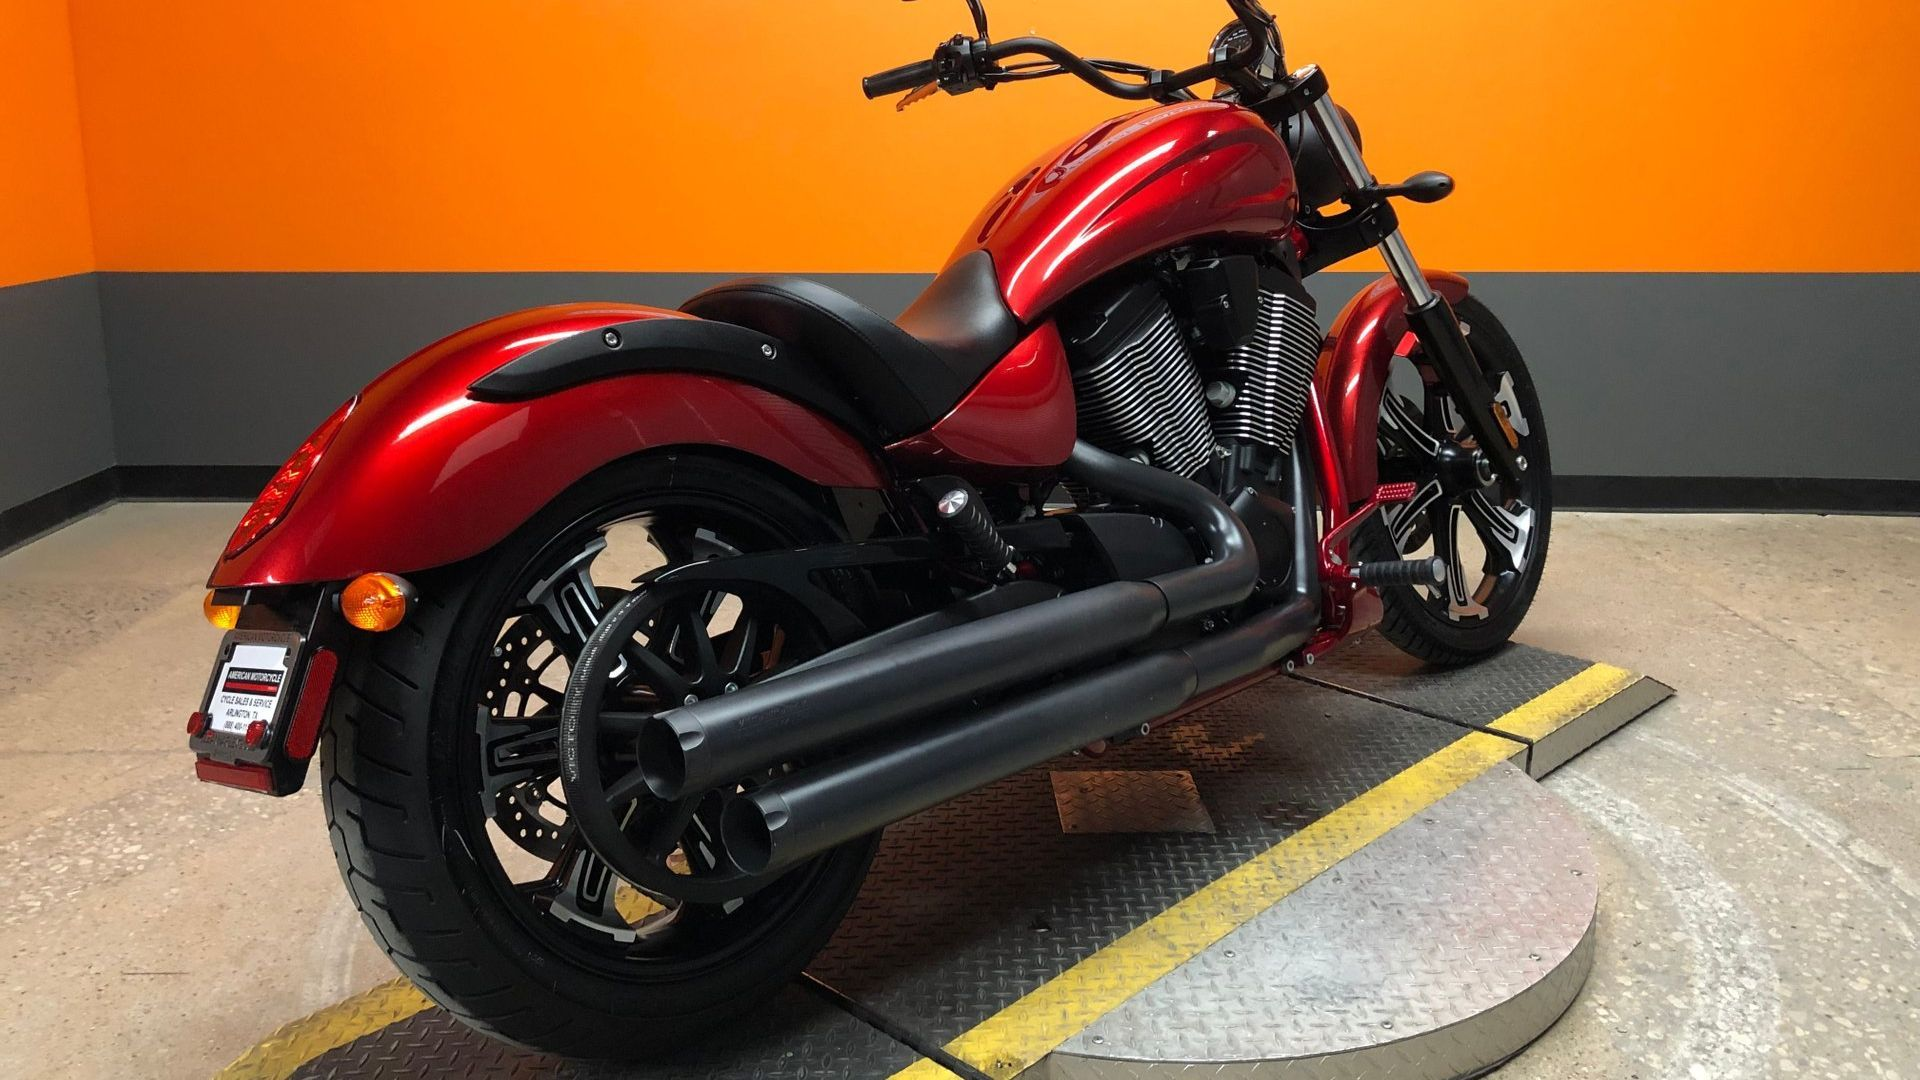 Ride Sinister On This 2017 Victory Vegas 8-Ball